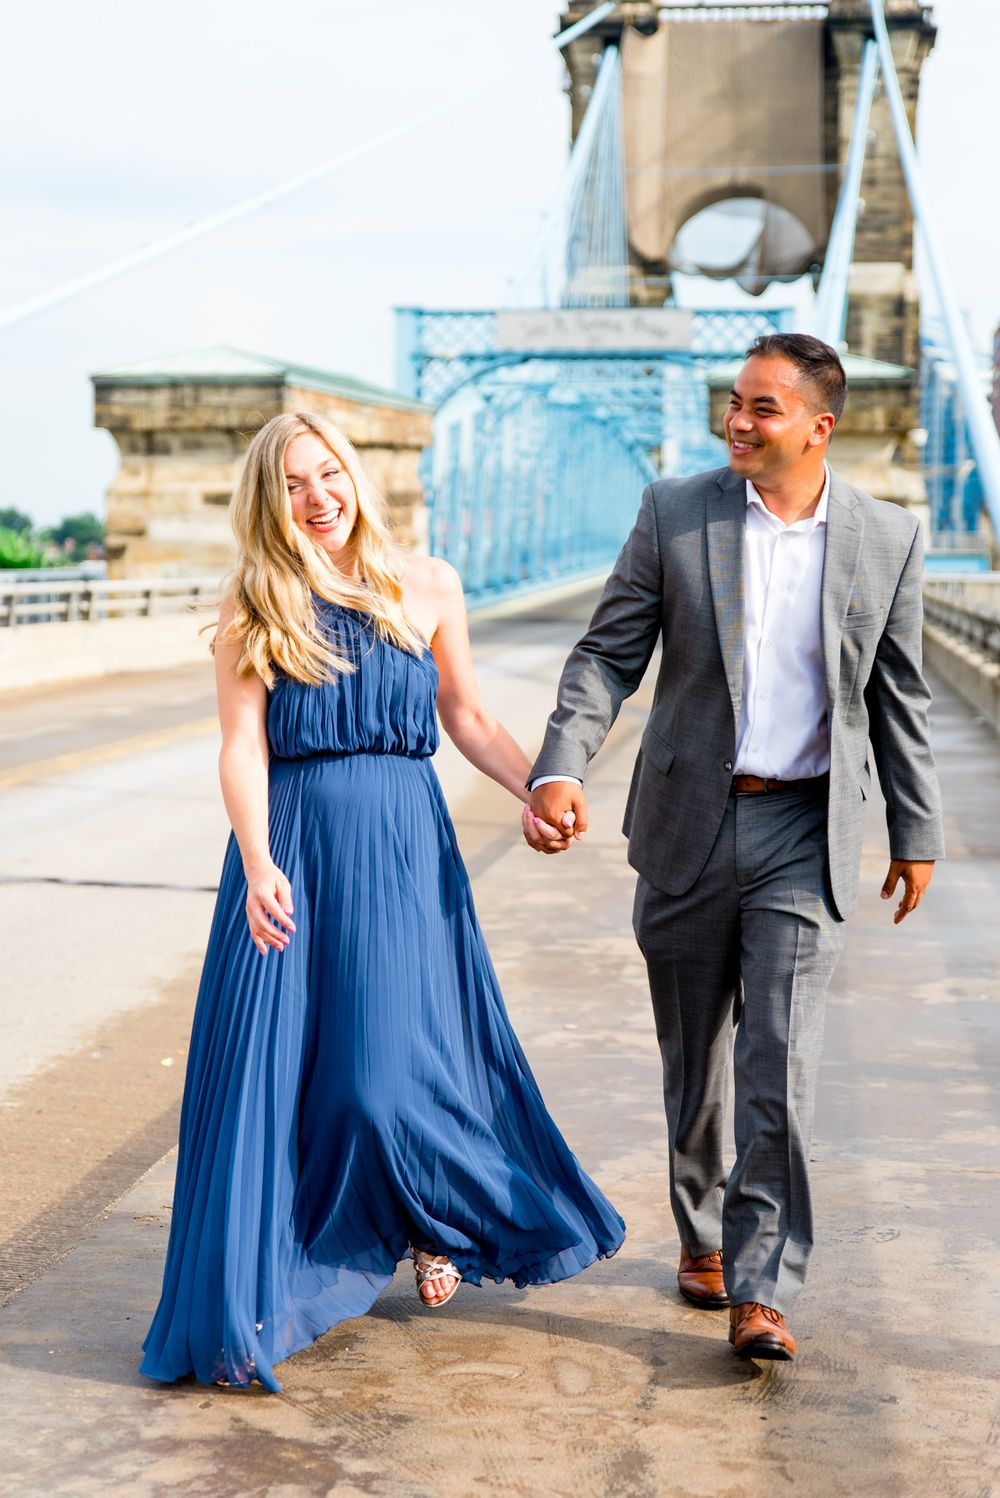 man in grey suit holds hand of blonde woman in blue dress as they walk near the Roebling Bridge for engagement pictures